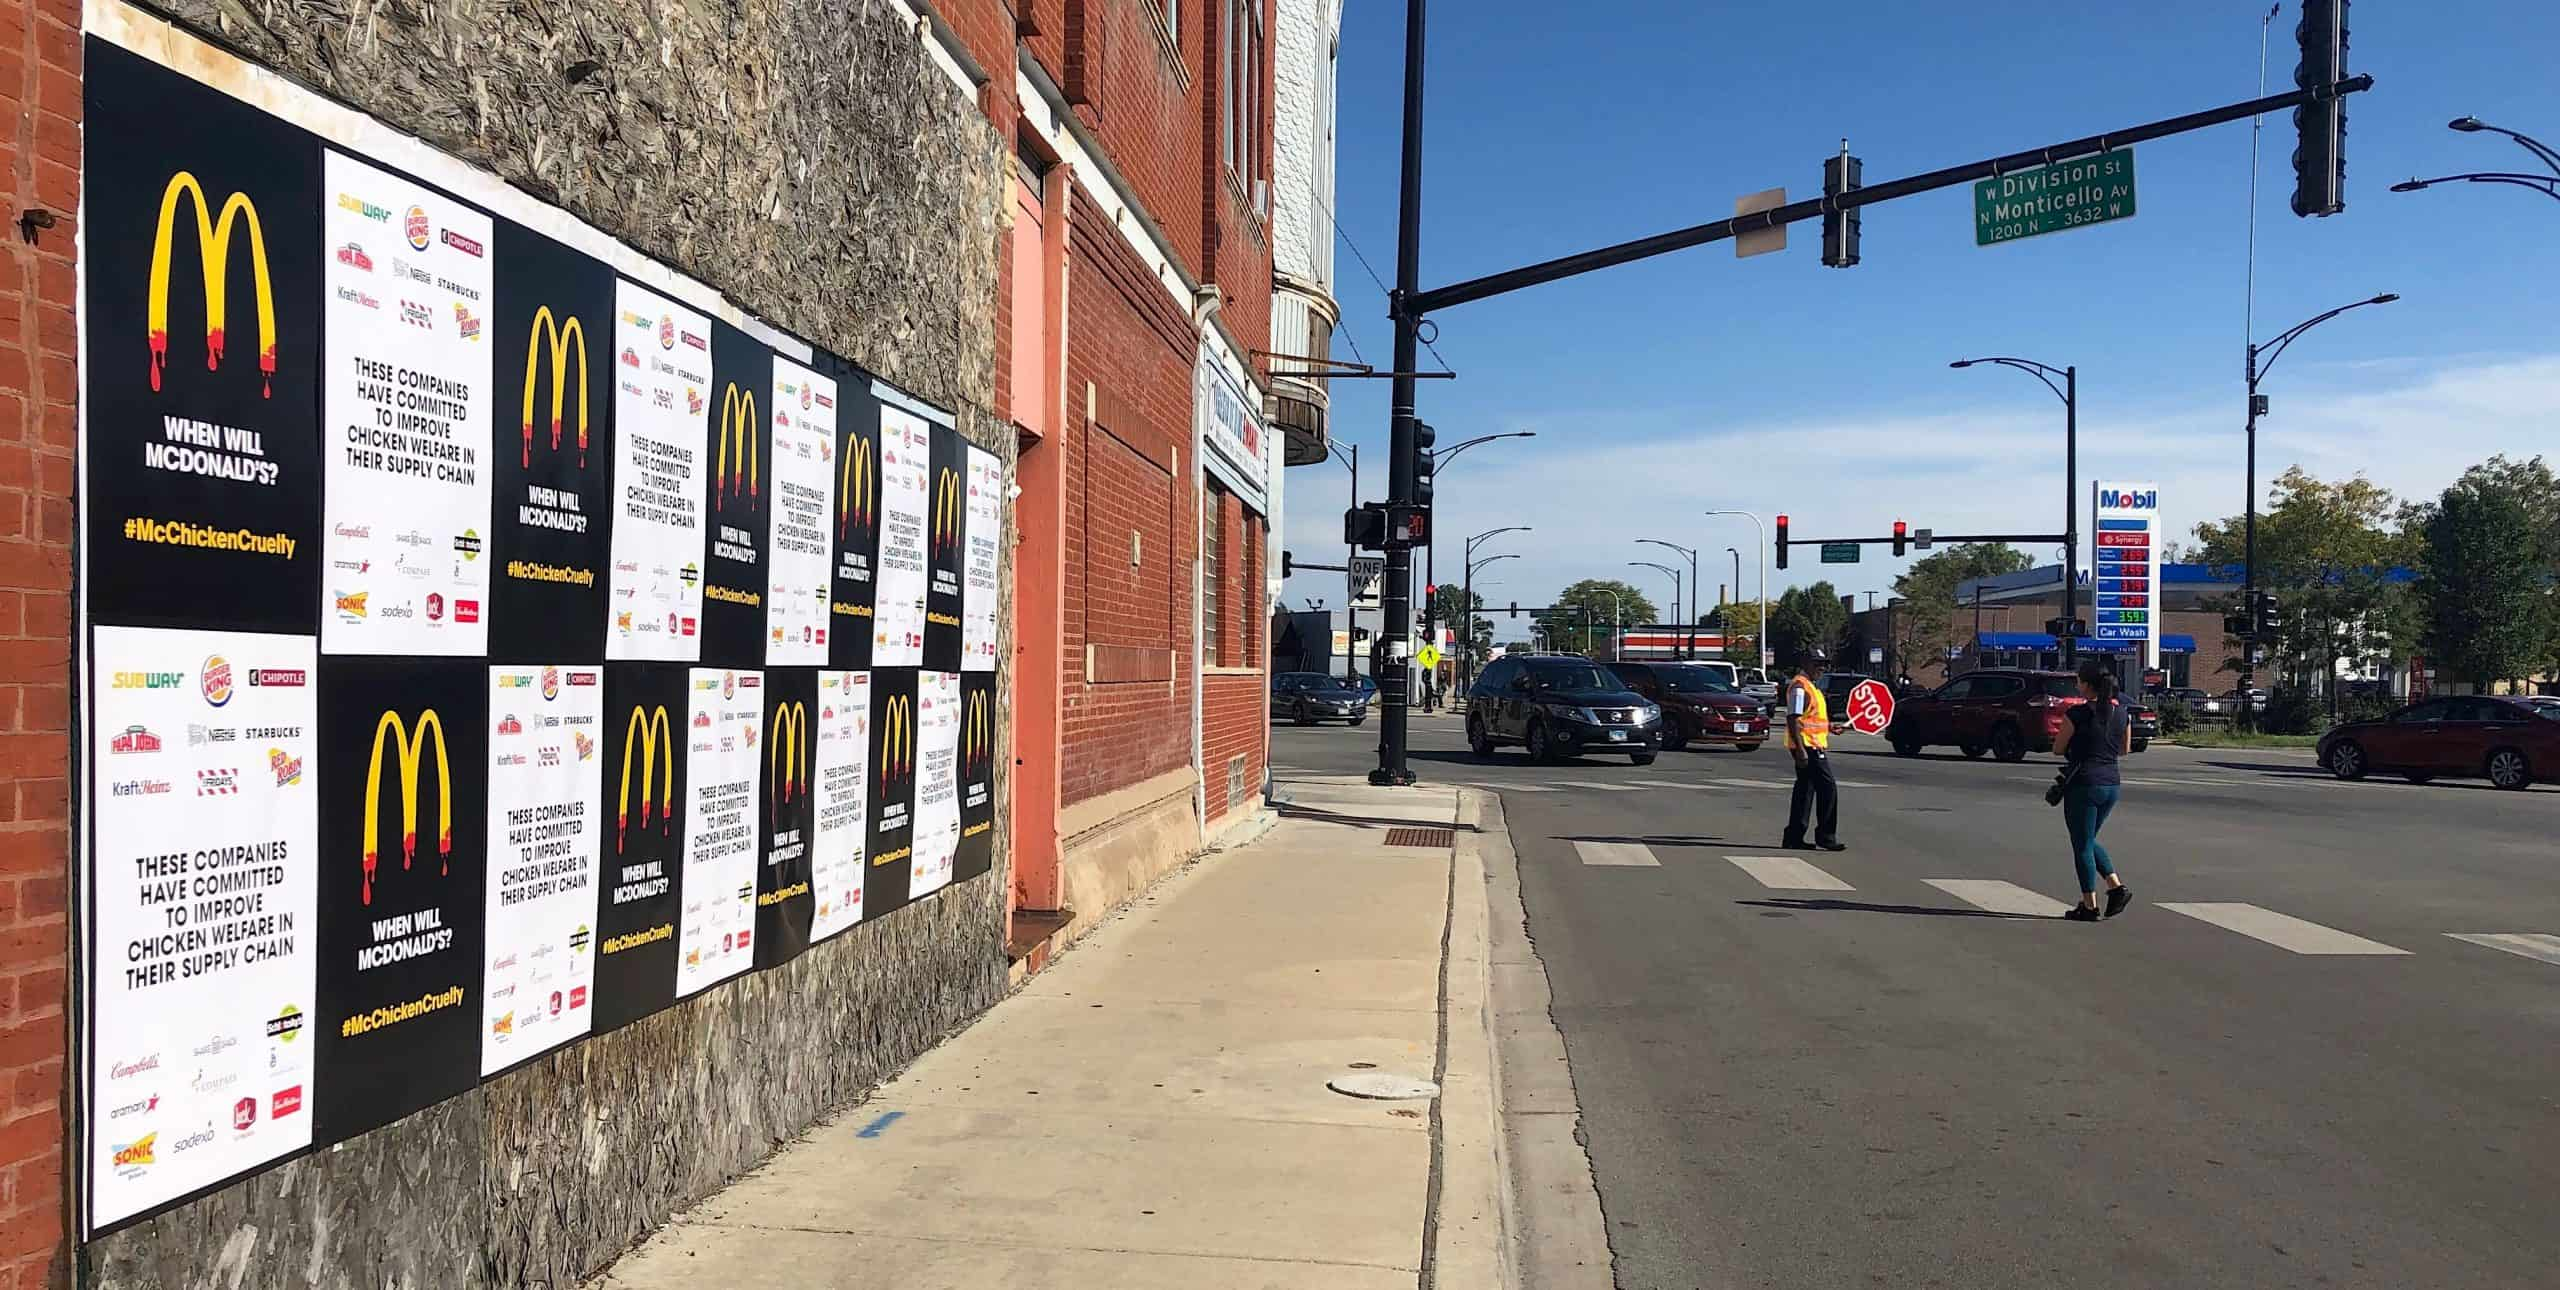 Chicago Nonprofit Cause Wild Postings Outdoor Advertising - Logan Square